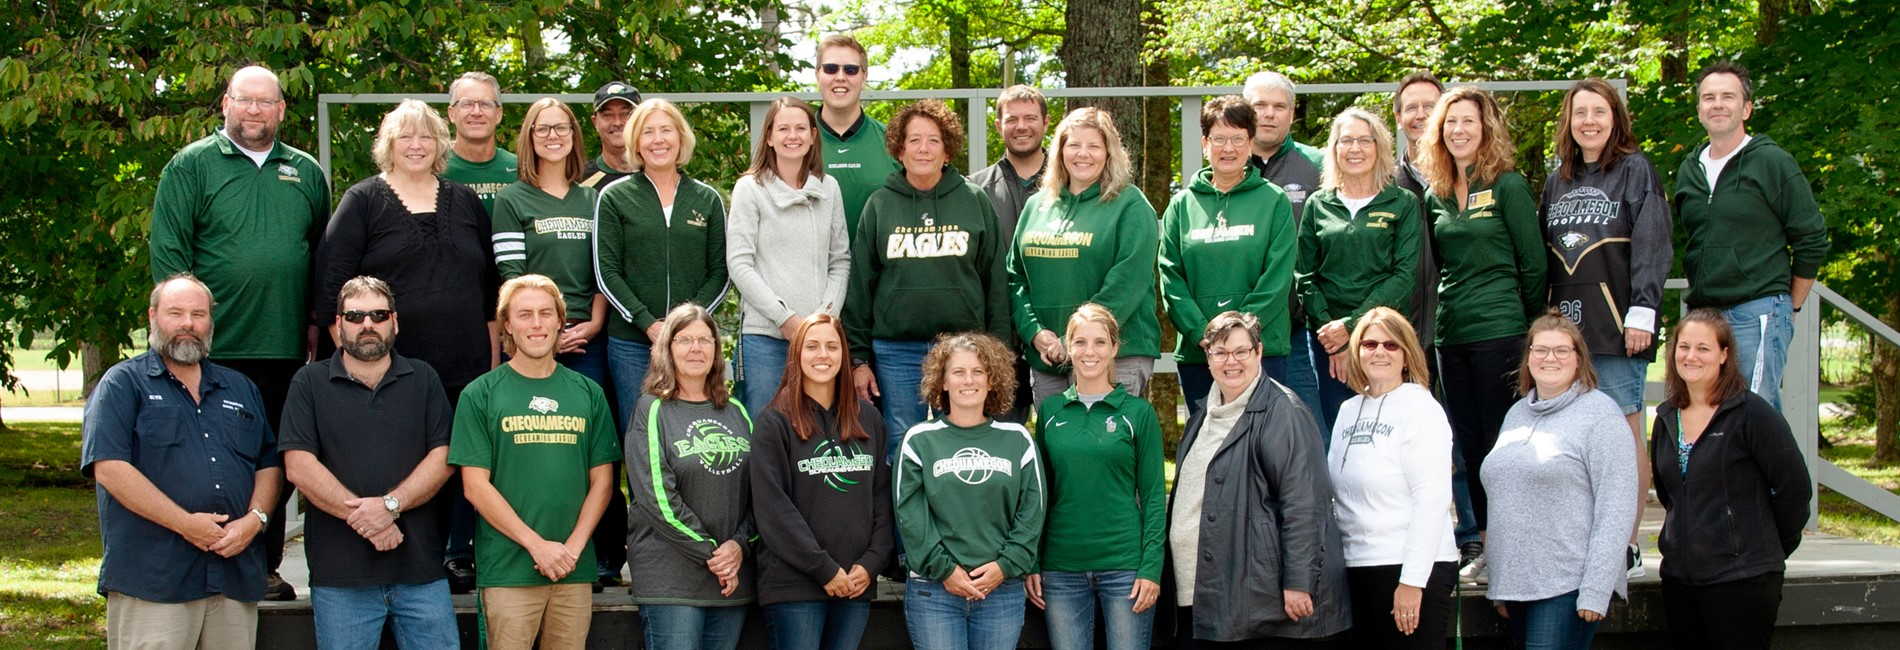 2019-2020 Chequamegon High School Staff